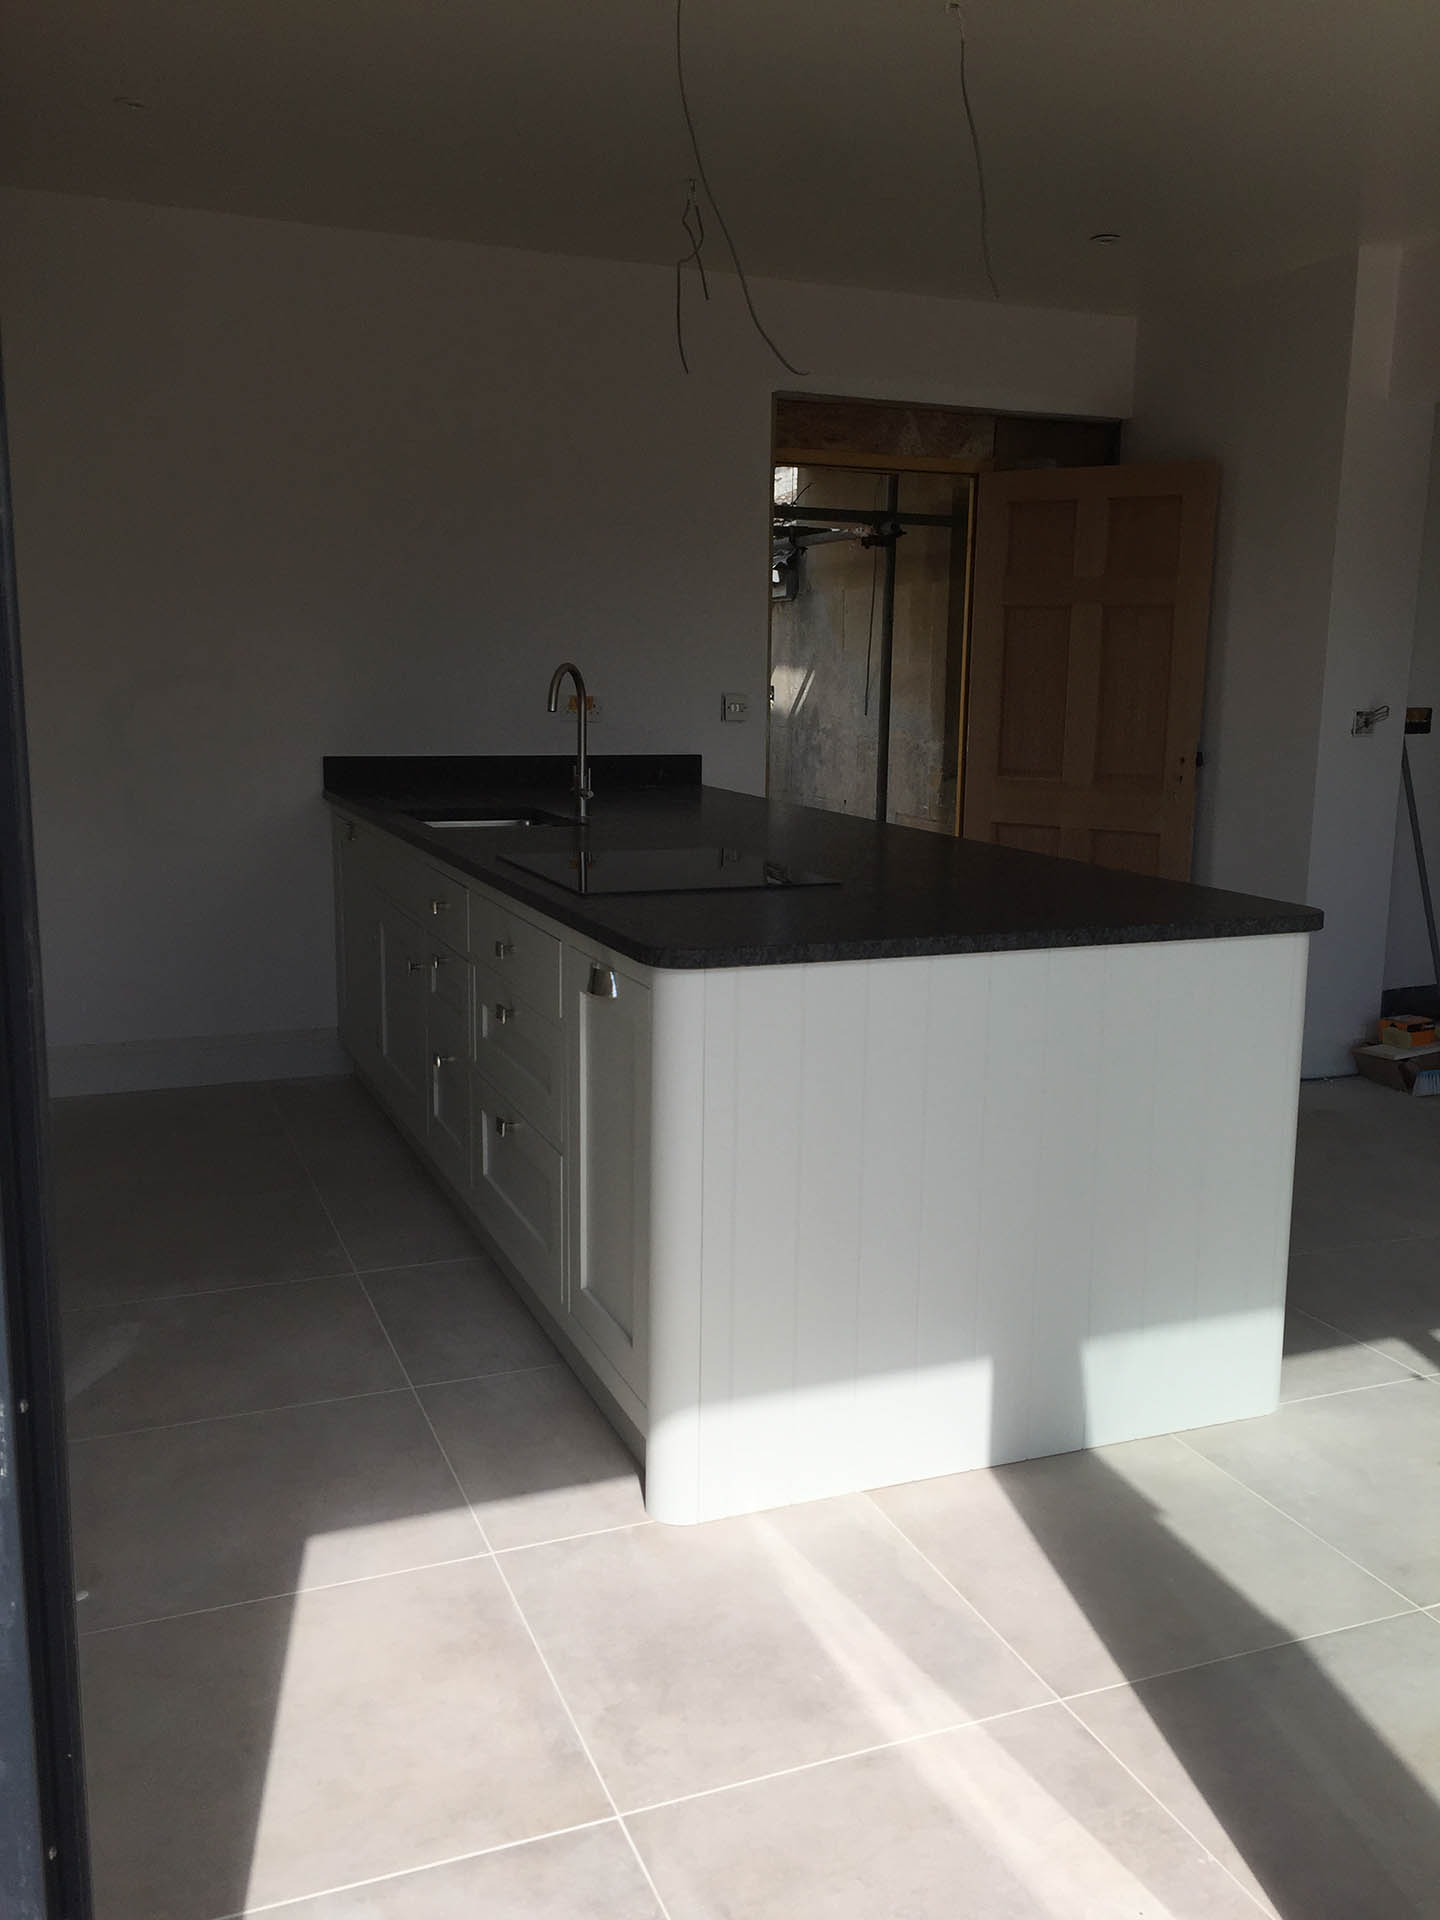 A row of kitchen cupboards with a sink and hob integrated into the surfaces.